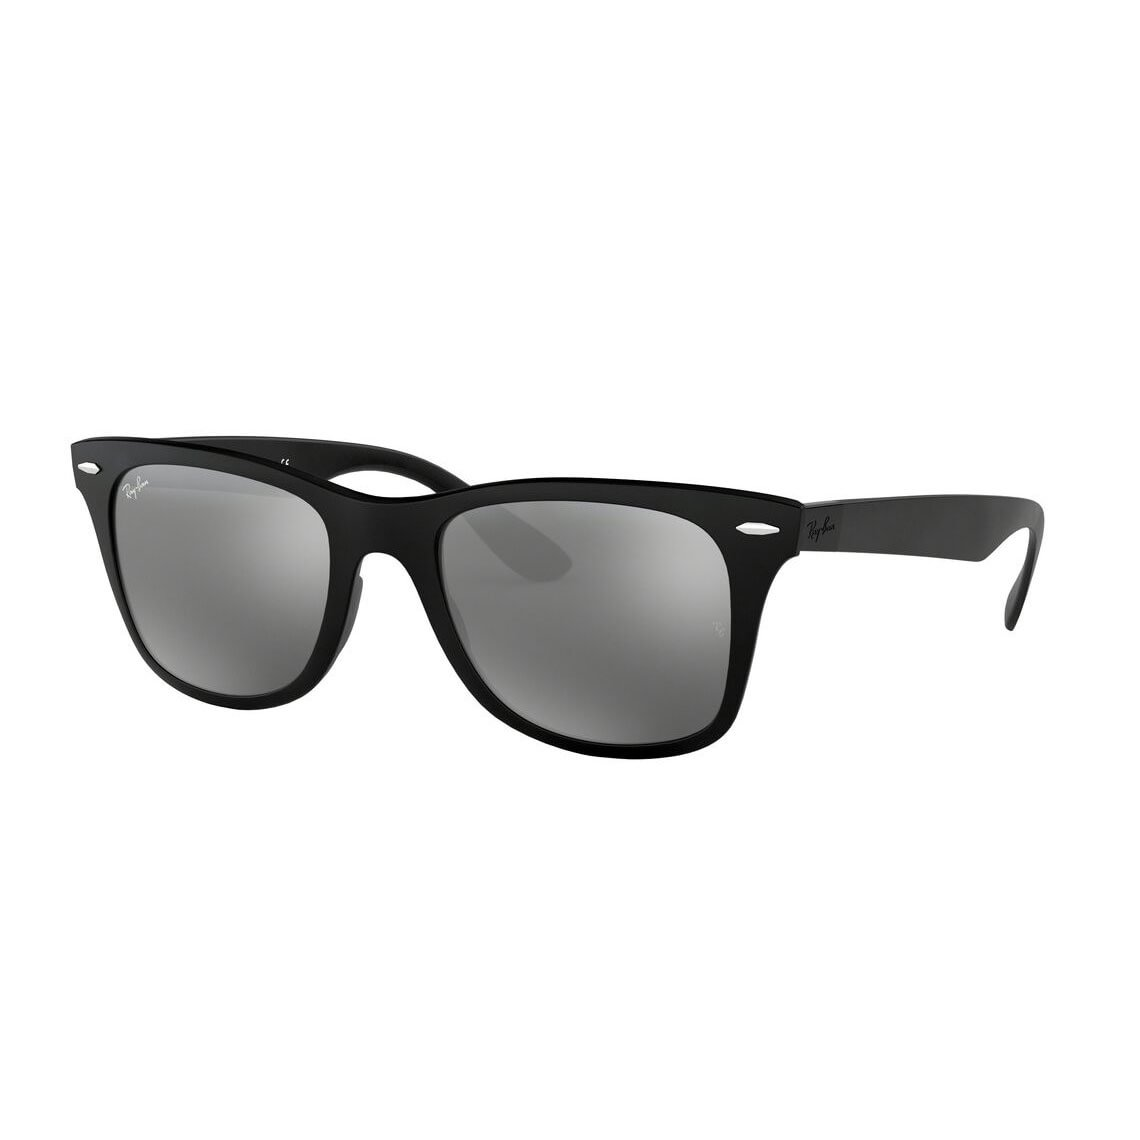 Ray-Ban Wayfarer Liteforce RB4195 601S88 52